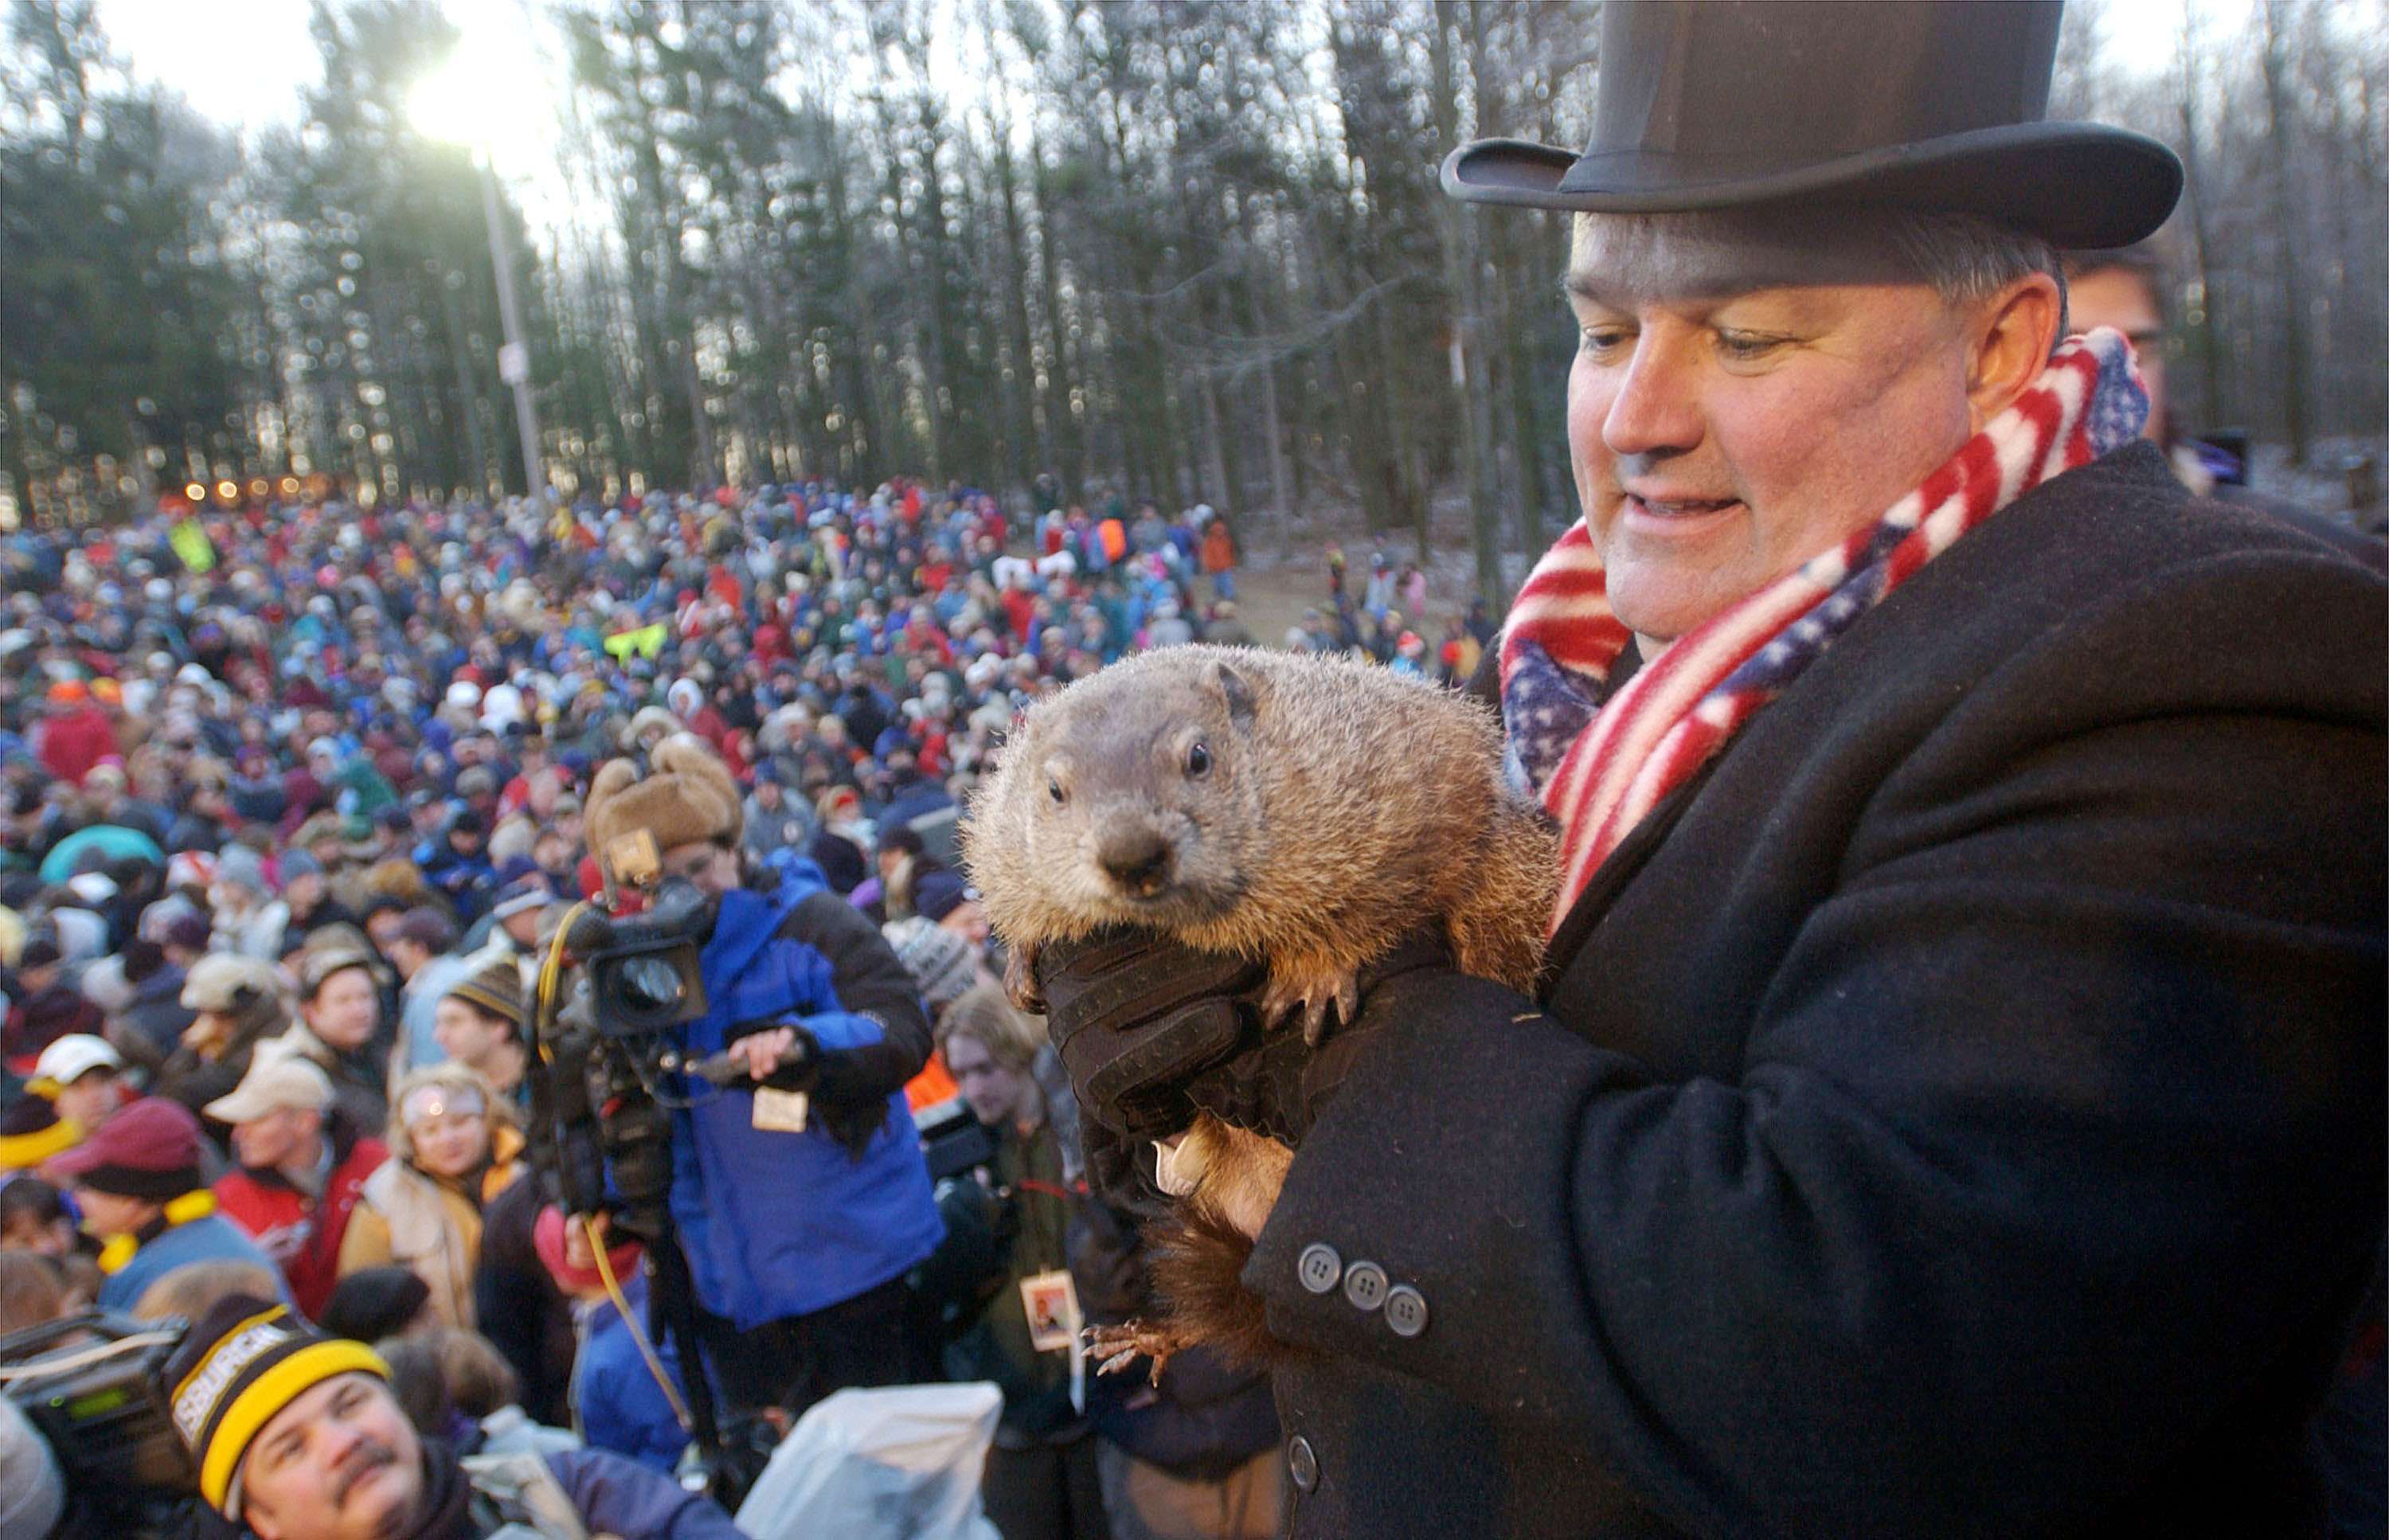 Rodent Predicts Persisting Winter as Groundhog Day Celebrated in US